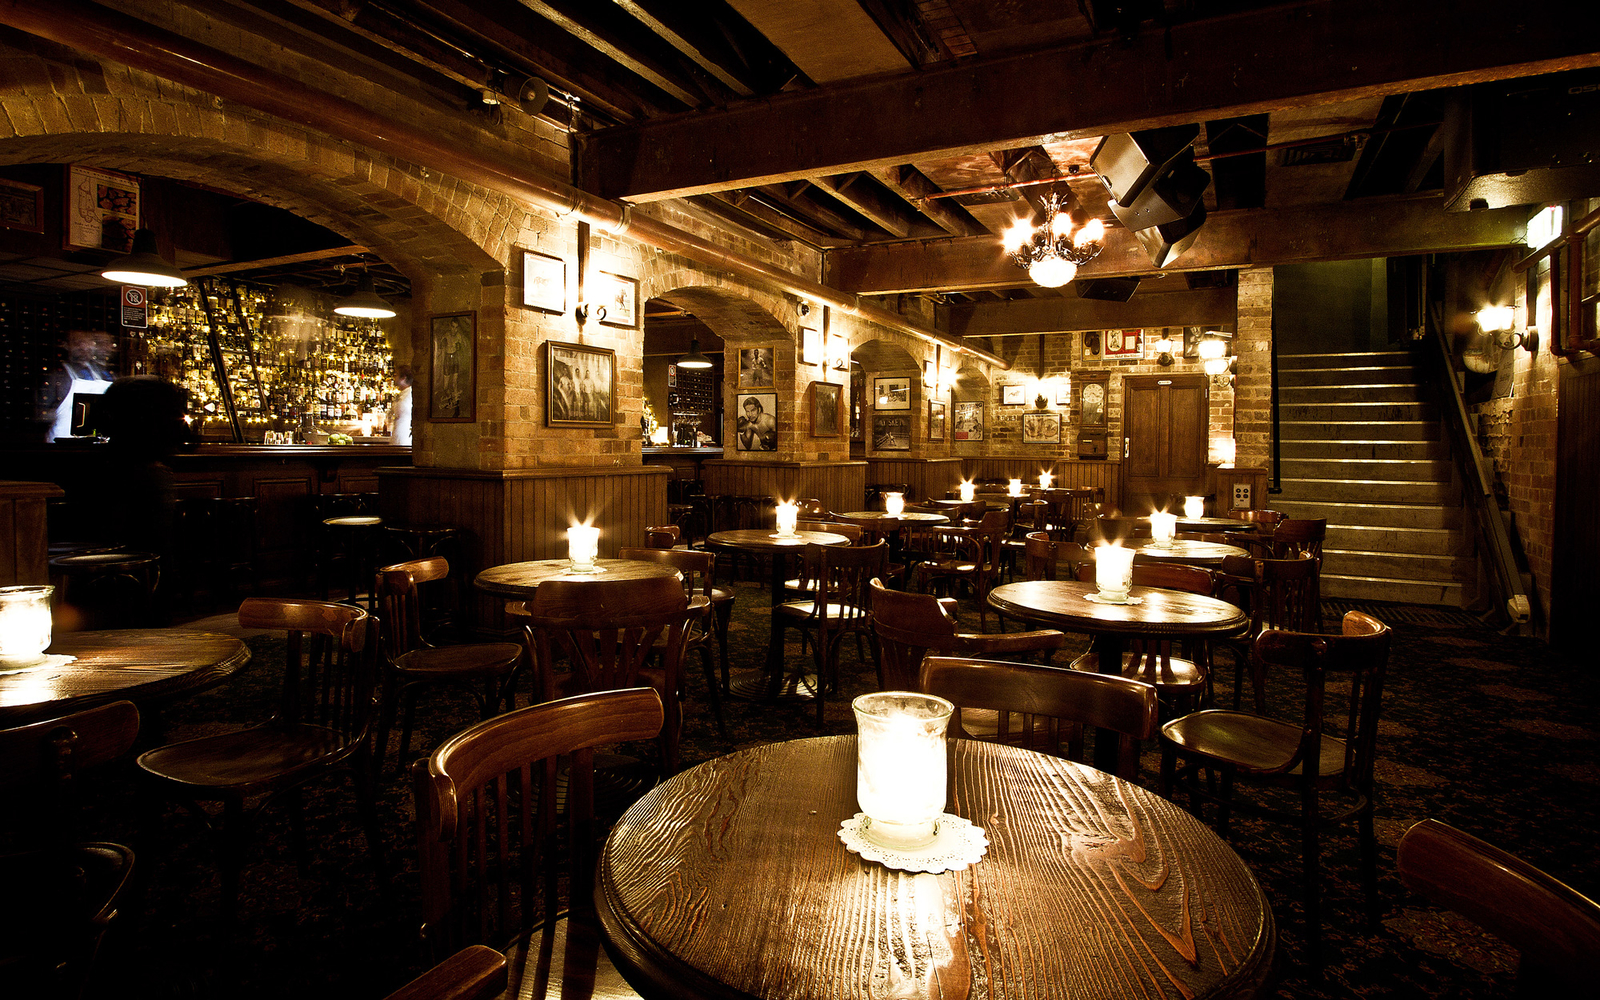 6. The Baxter Inn, Sydney